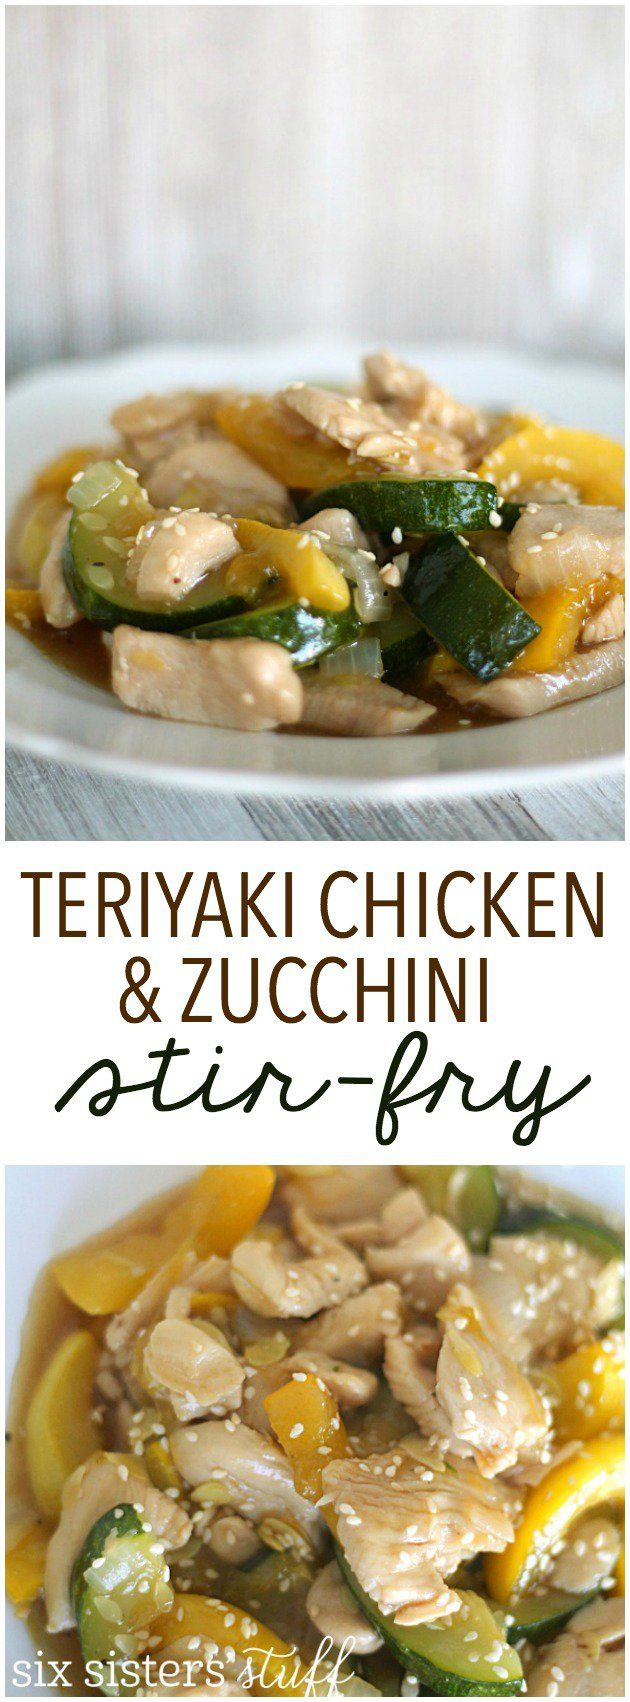 Teriyaki Chicken & Zucchini Stir-Fry Recipe from SixSistersStuff.com. An easy, healthy meal full of protein and vegetables!